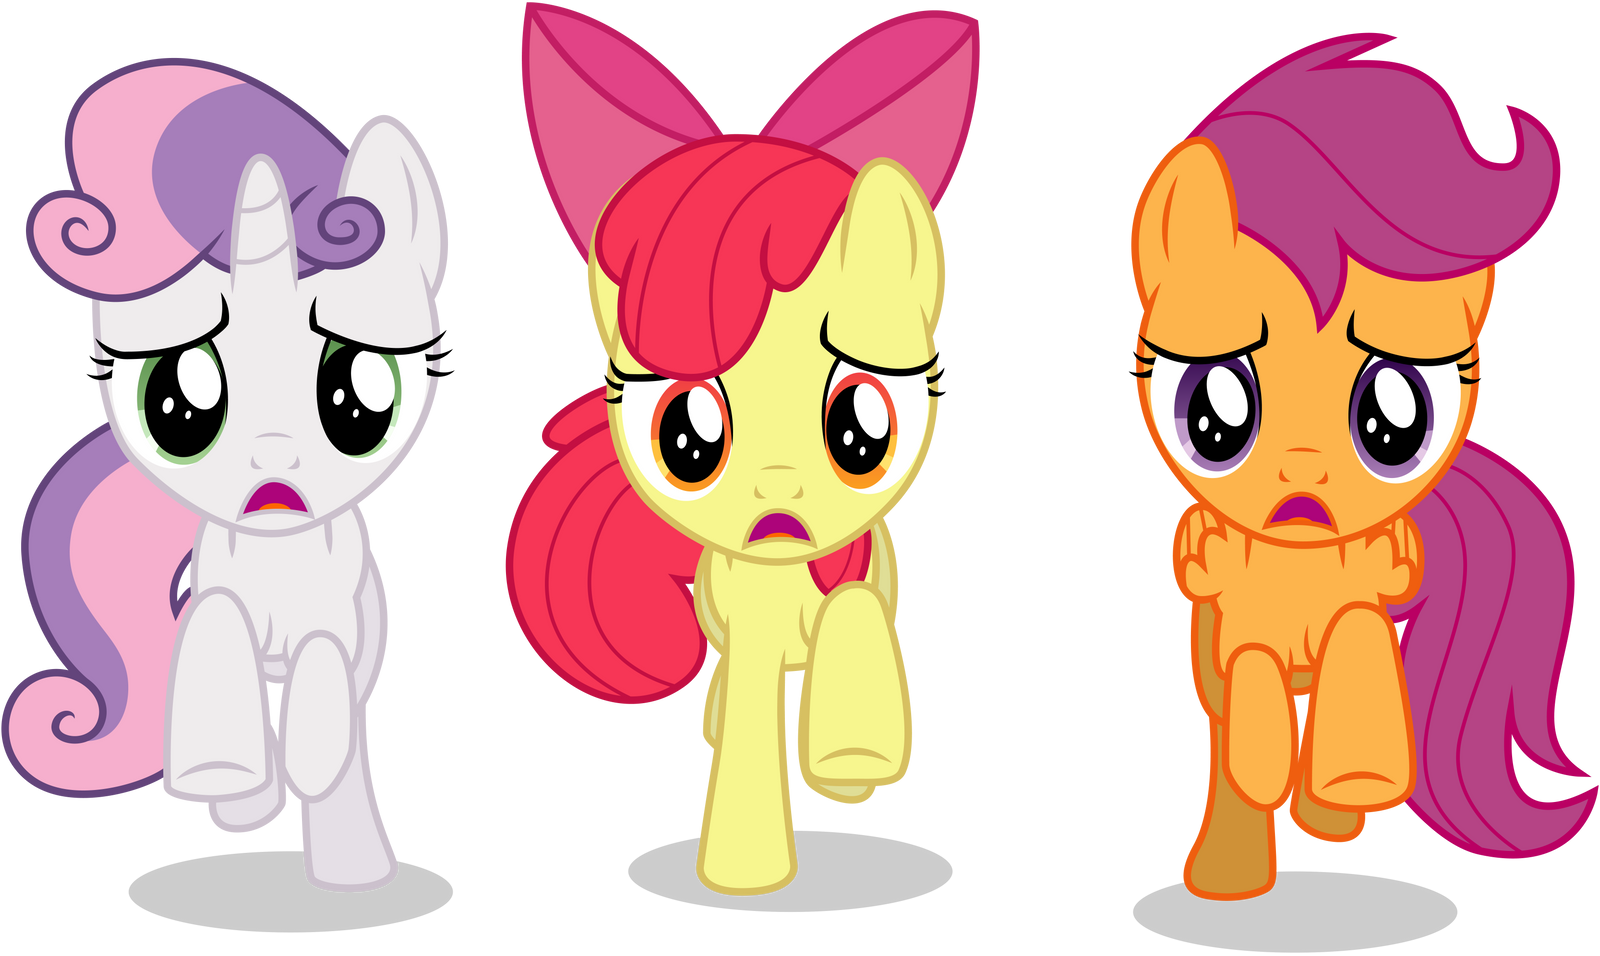 Cmc Running Away By Caliazian On Deviantart Now we're on a mission to help ponies discover theirs! cmc running away by caliazian on